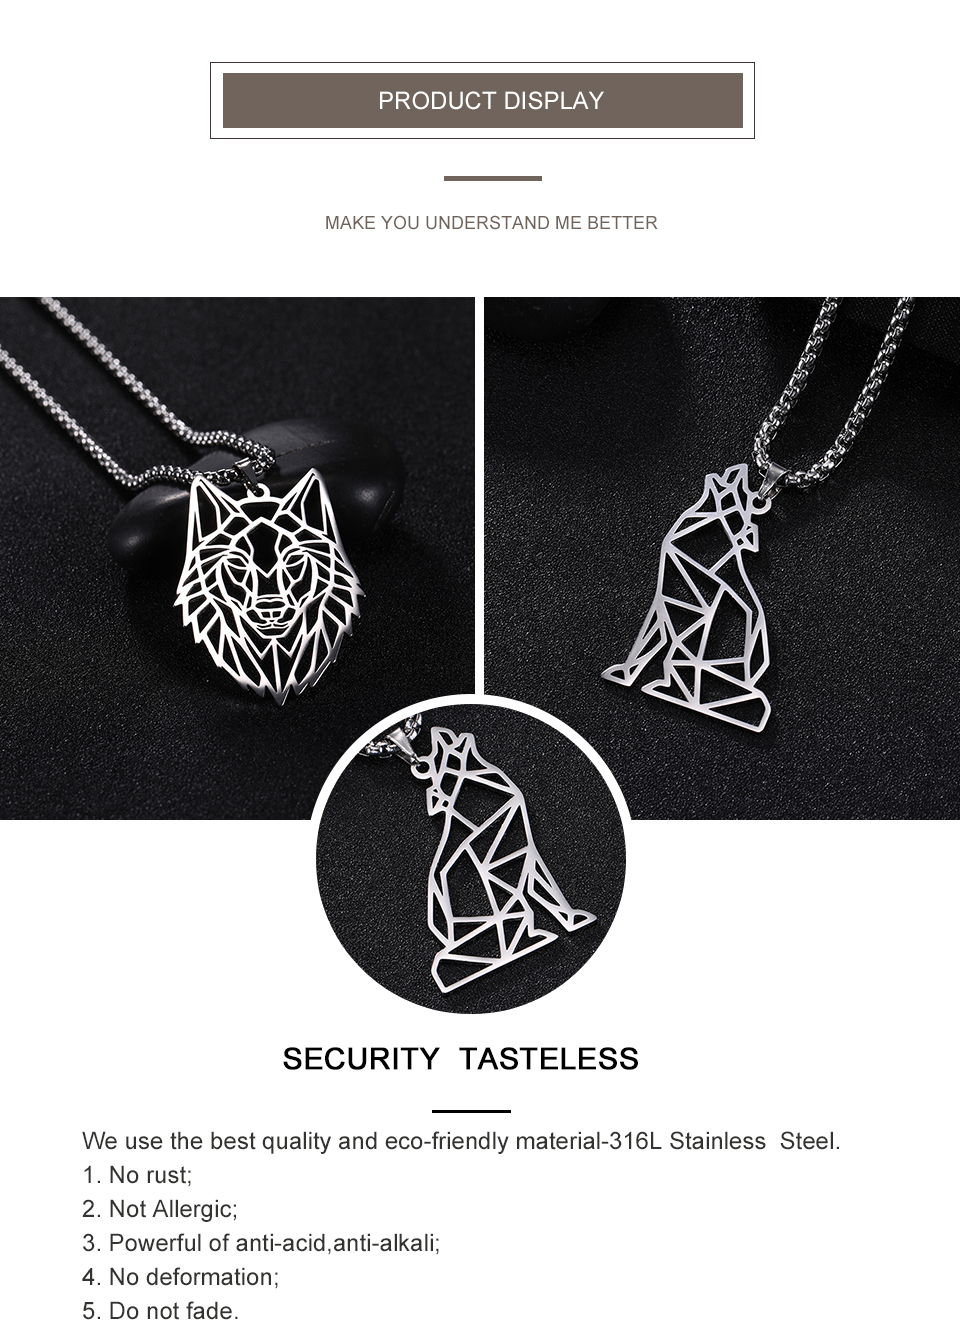 Hc92d337fd5124c8dbc9f012ca3bfb365q - My Shape Wolf Animal Necklace 316L Stainless Steel Forest Animals Men Necklace Hollow Cut Out Pendant Jewelry Gift For Women